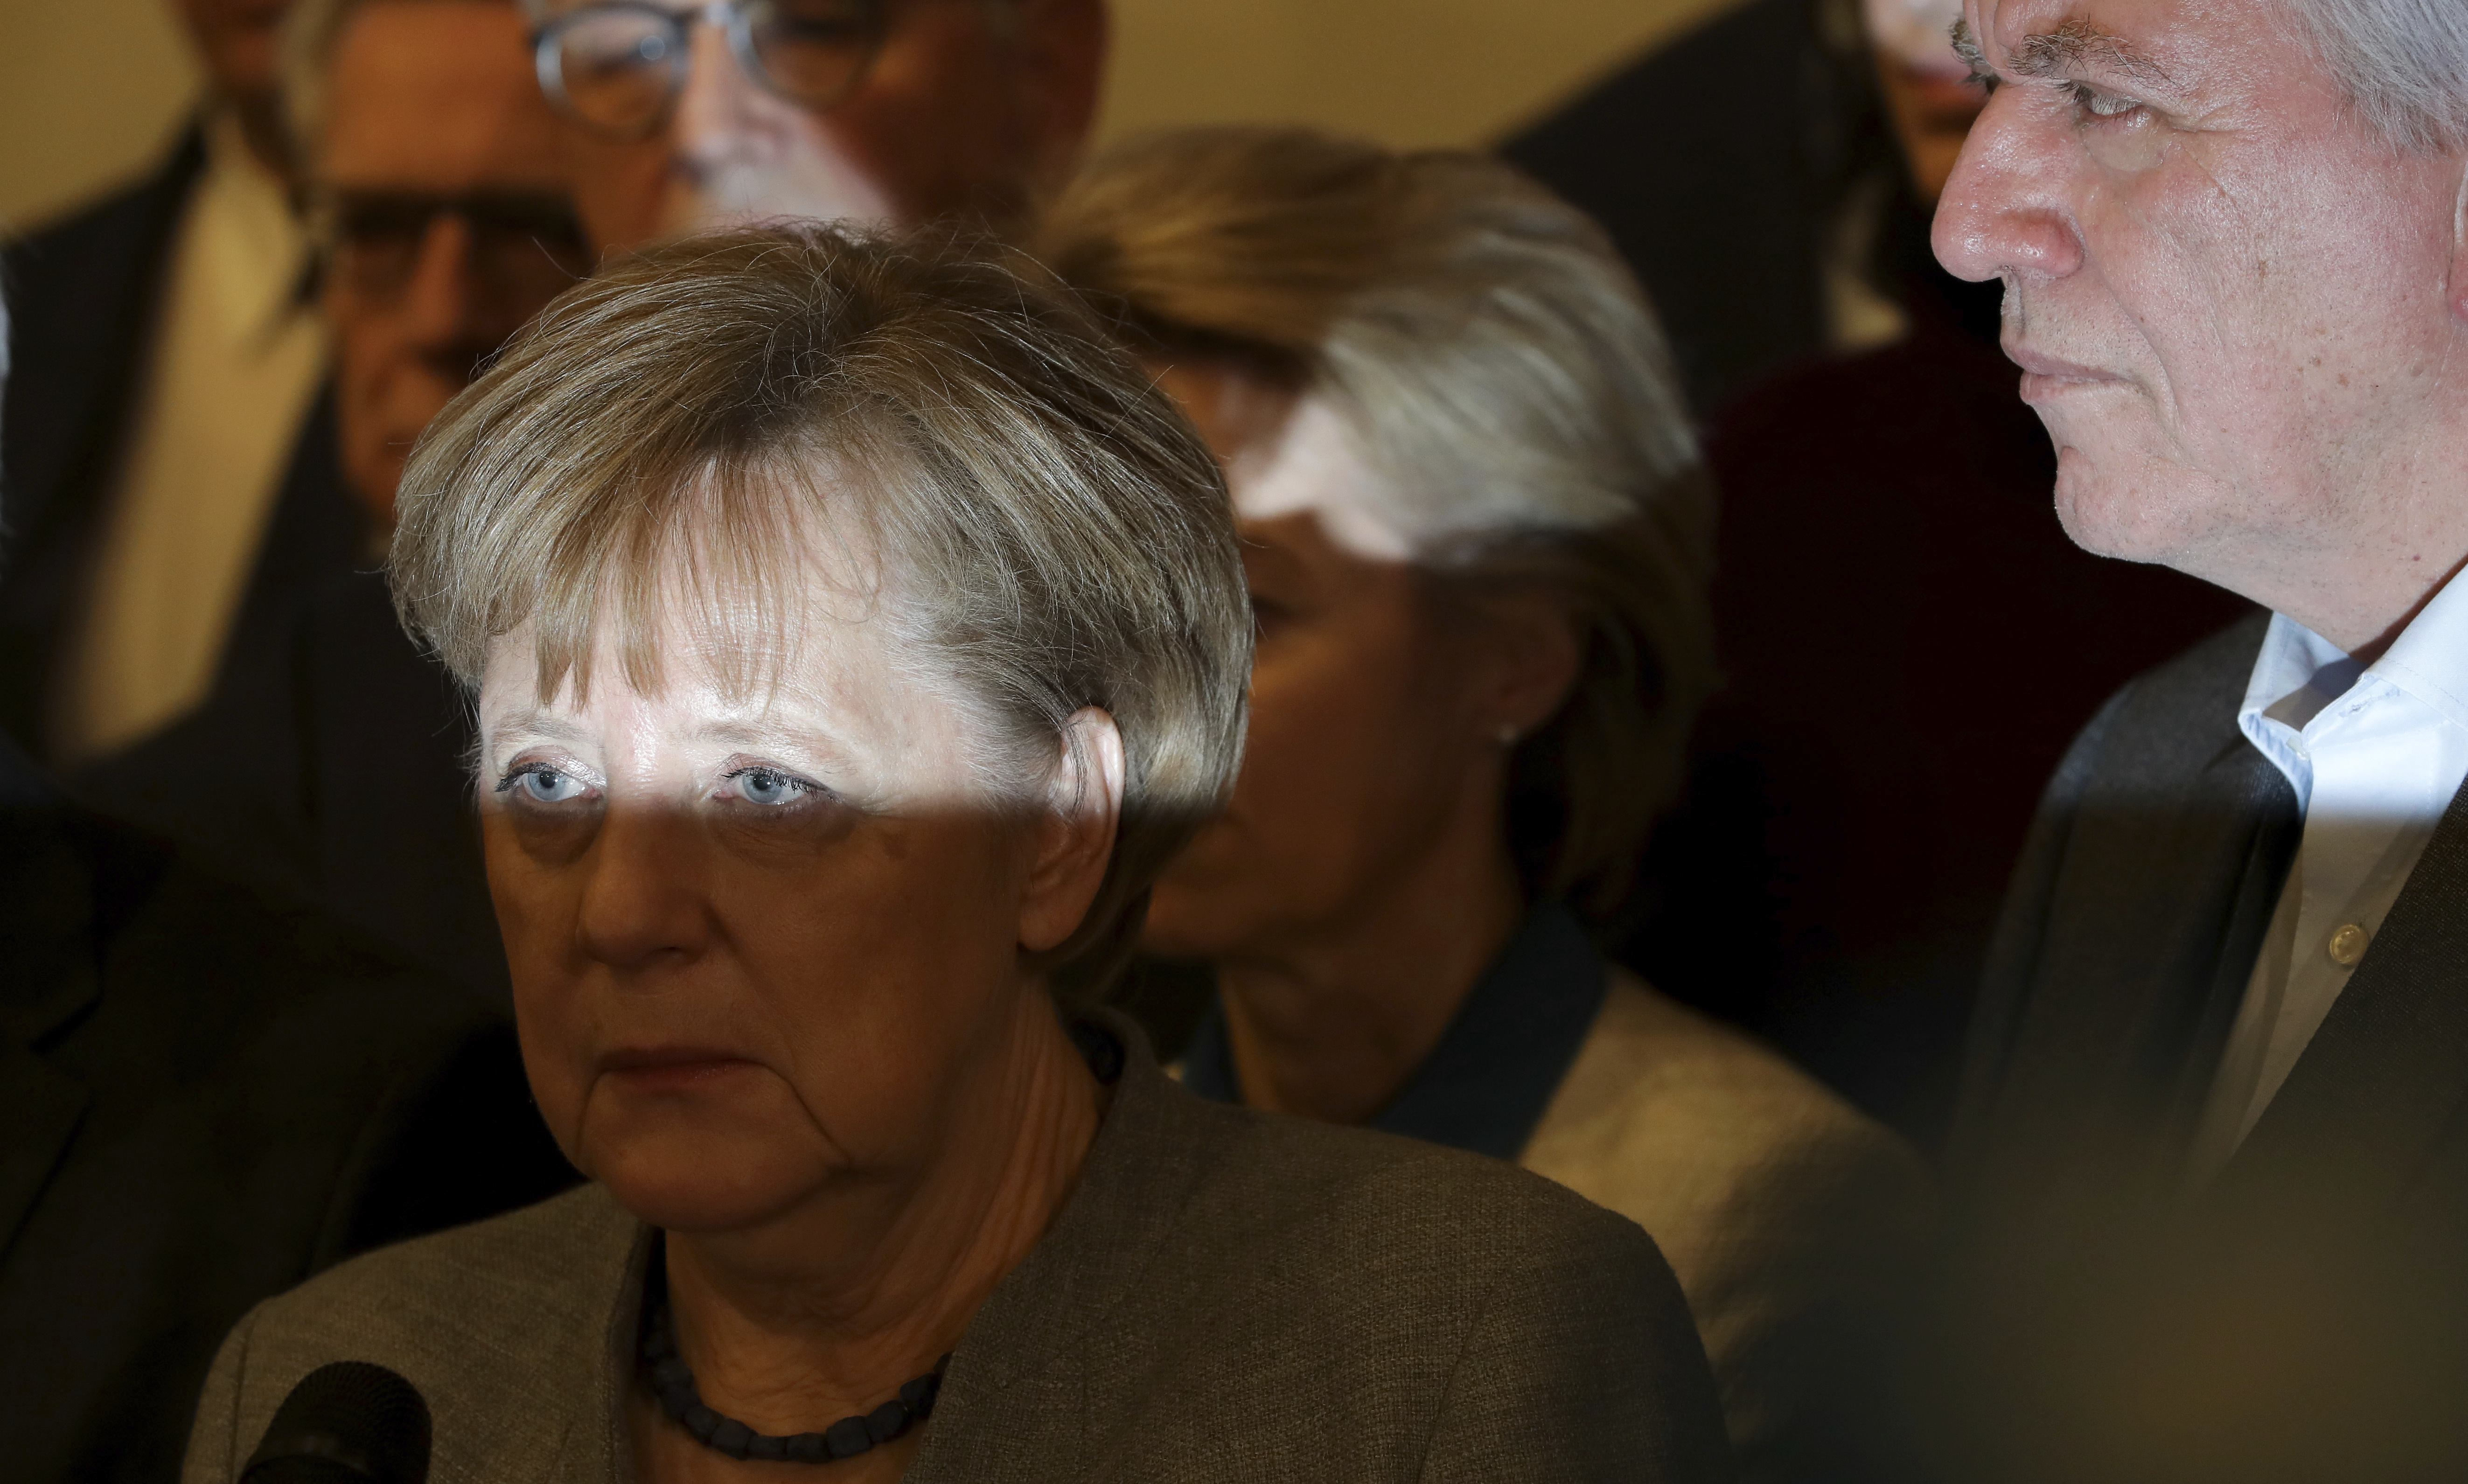 German Chancellor and chairwomen of the German Christian Democratic Union (CDU), Angela Merkel, front left, attends a news conference about the results of their exploratory talks on a coalition of the German Liberals, the Green Party, the Christian Democrats and the Christian Social Union, in Berlin, Germany, Monday, Nov. 20, 2017. (AP Photo/Michael Sohn)